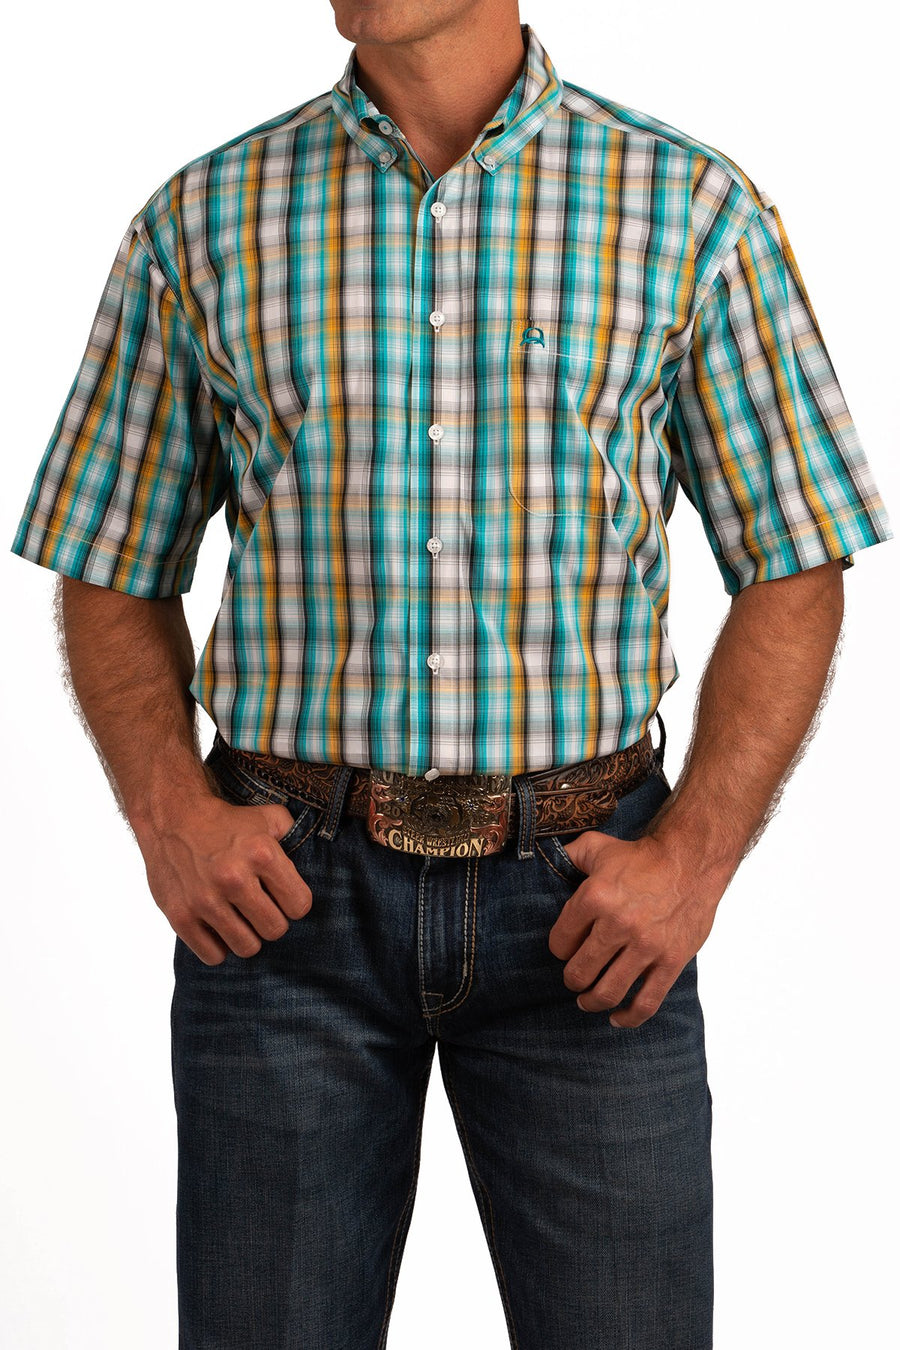 185f2c41 MENS SHORT SLEEVE ARENAFLEX BUTTON-DOWN SHIRT - TURQUOISE, WHITE AND GOLD  PLAID